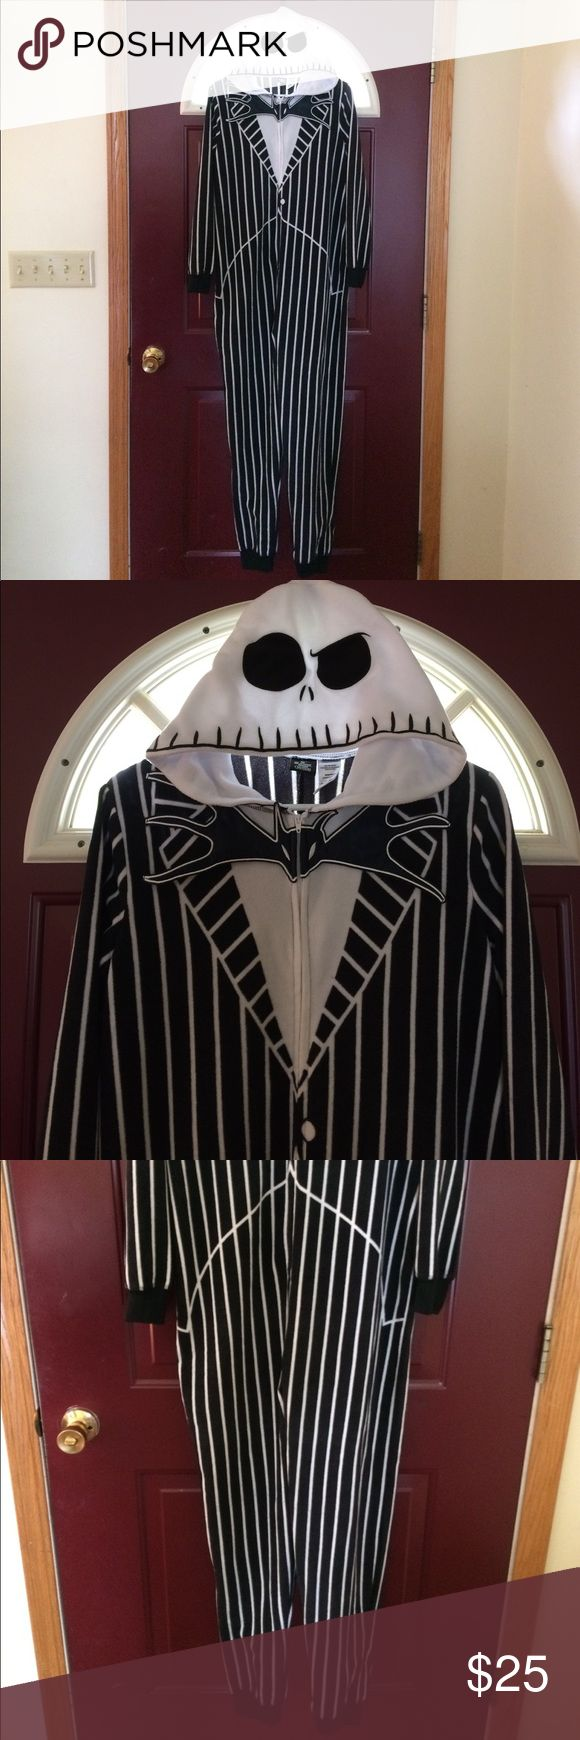 Jack Skellington One Piece Set From director Tim Burtons film The Nightmare Before Christmas comes this one piece fleece Jack Skellington outfit. Size medium, would be fine for ladies, would probably fit men's small size. Front zip closure with hoodie. Would be great to wear while out trick or treating with the kids, or greeting the kids at the door wearing it. In EUC with no rips stains or holes. Comes from a smoke free home. Please ask if you have any questions! Disney Other